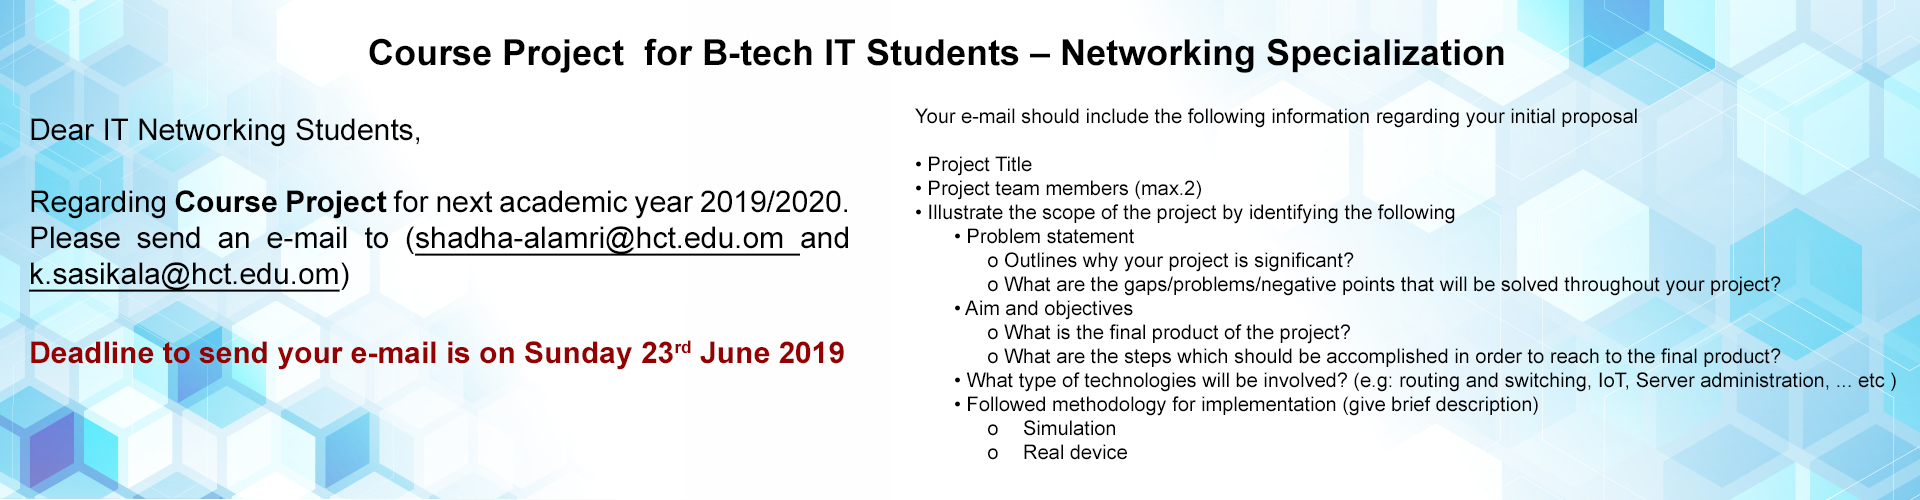 Course Project announcement for B-tech IT Students – Networking Specialization